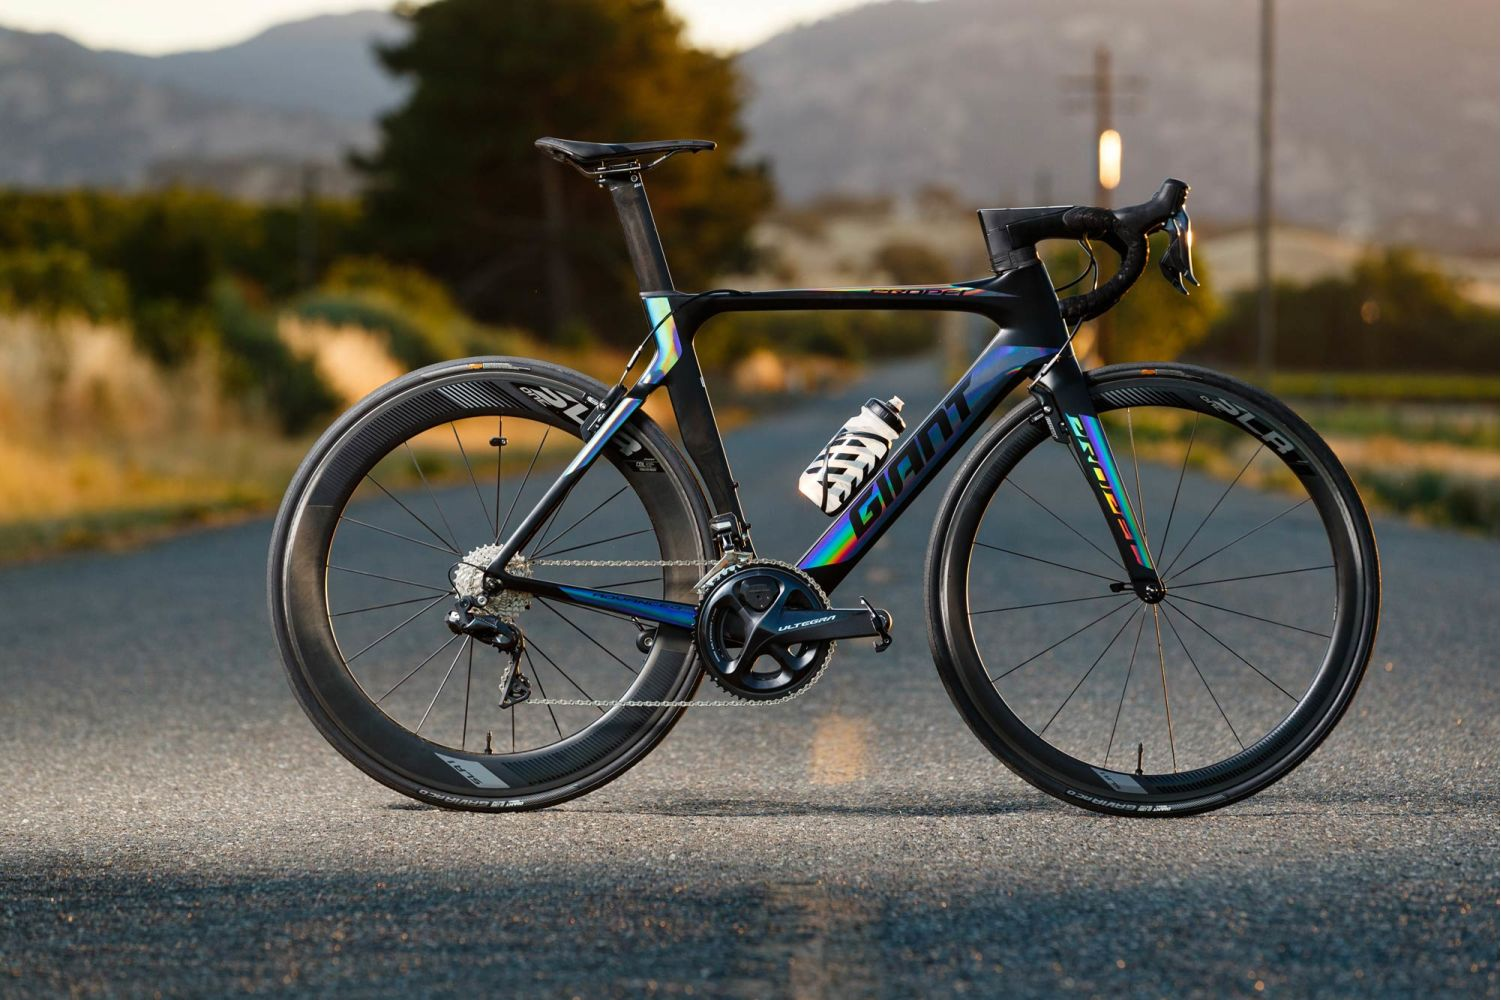 a94f94665ad The Propel Advanced Pro 0 model is built with high-performance components  including a Shimano Ultegra Di2 electronic drivetrain.